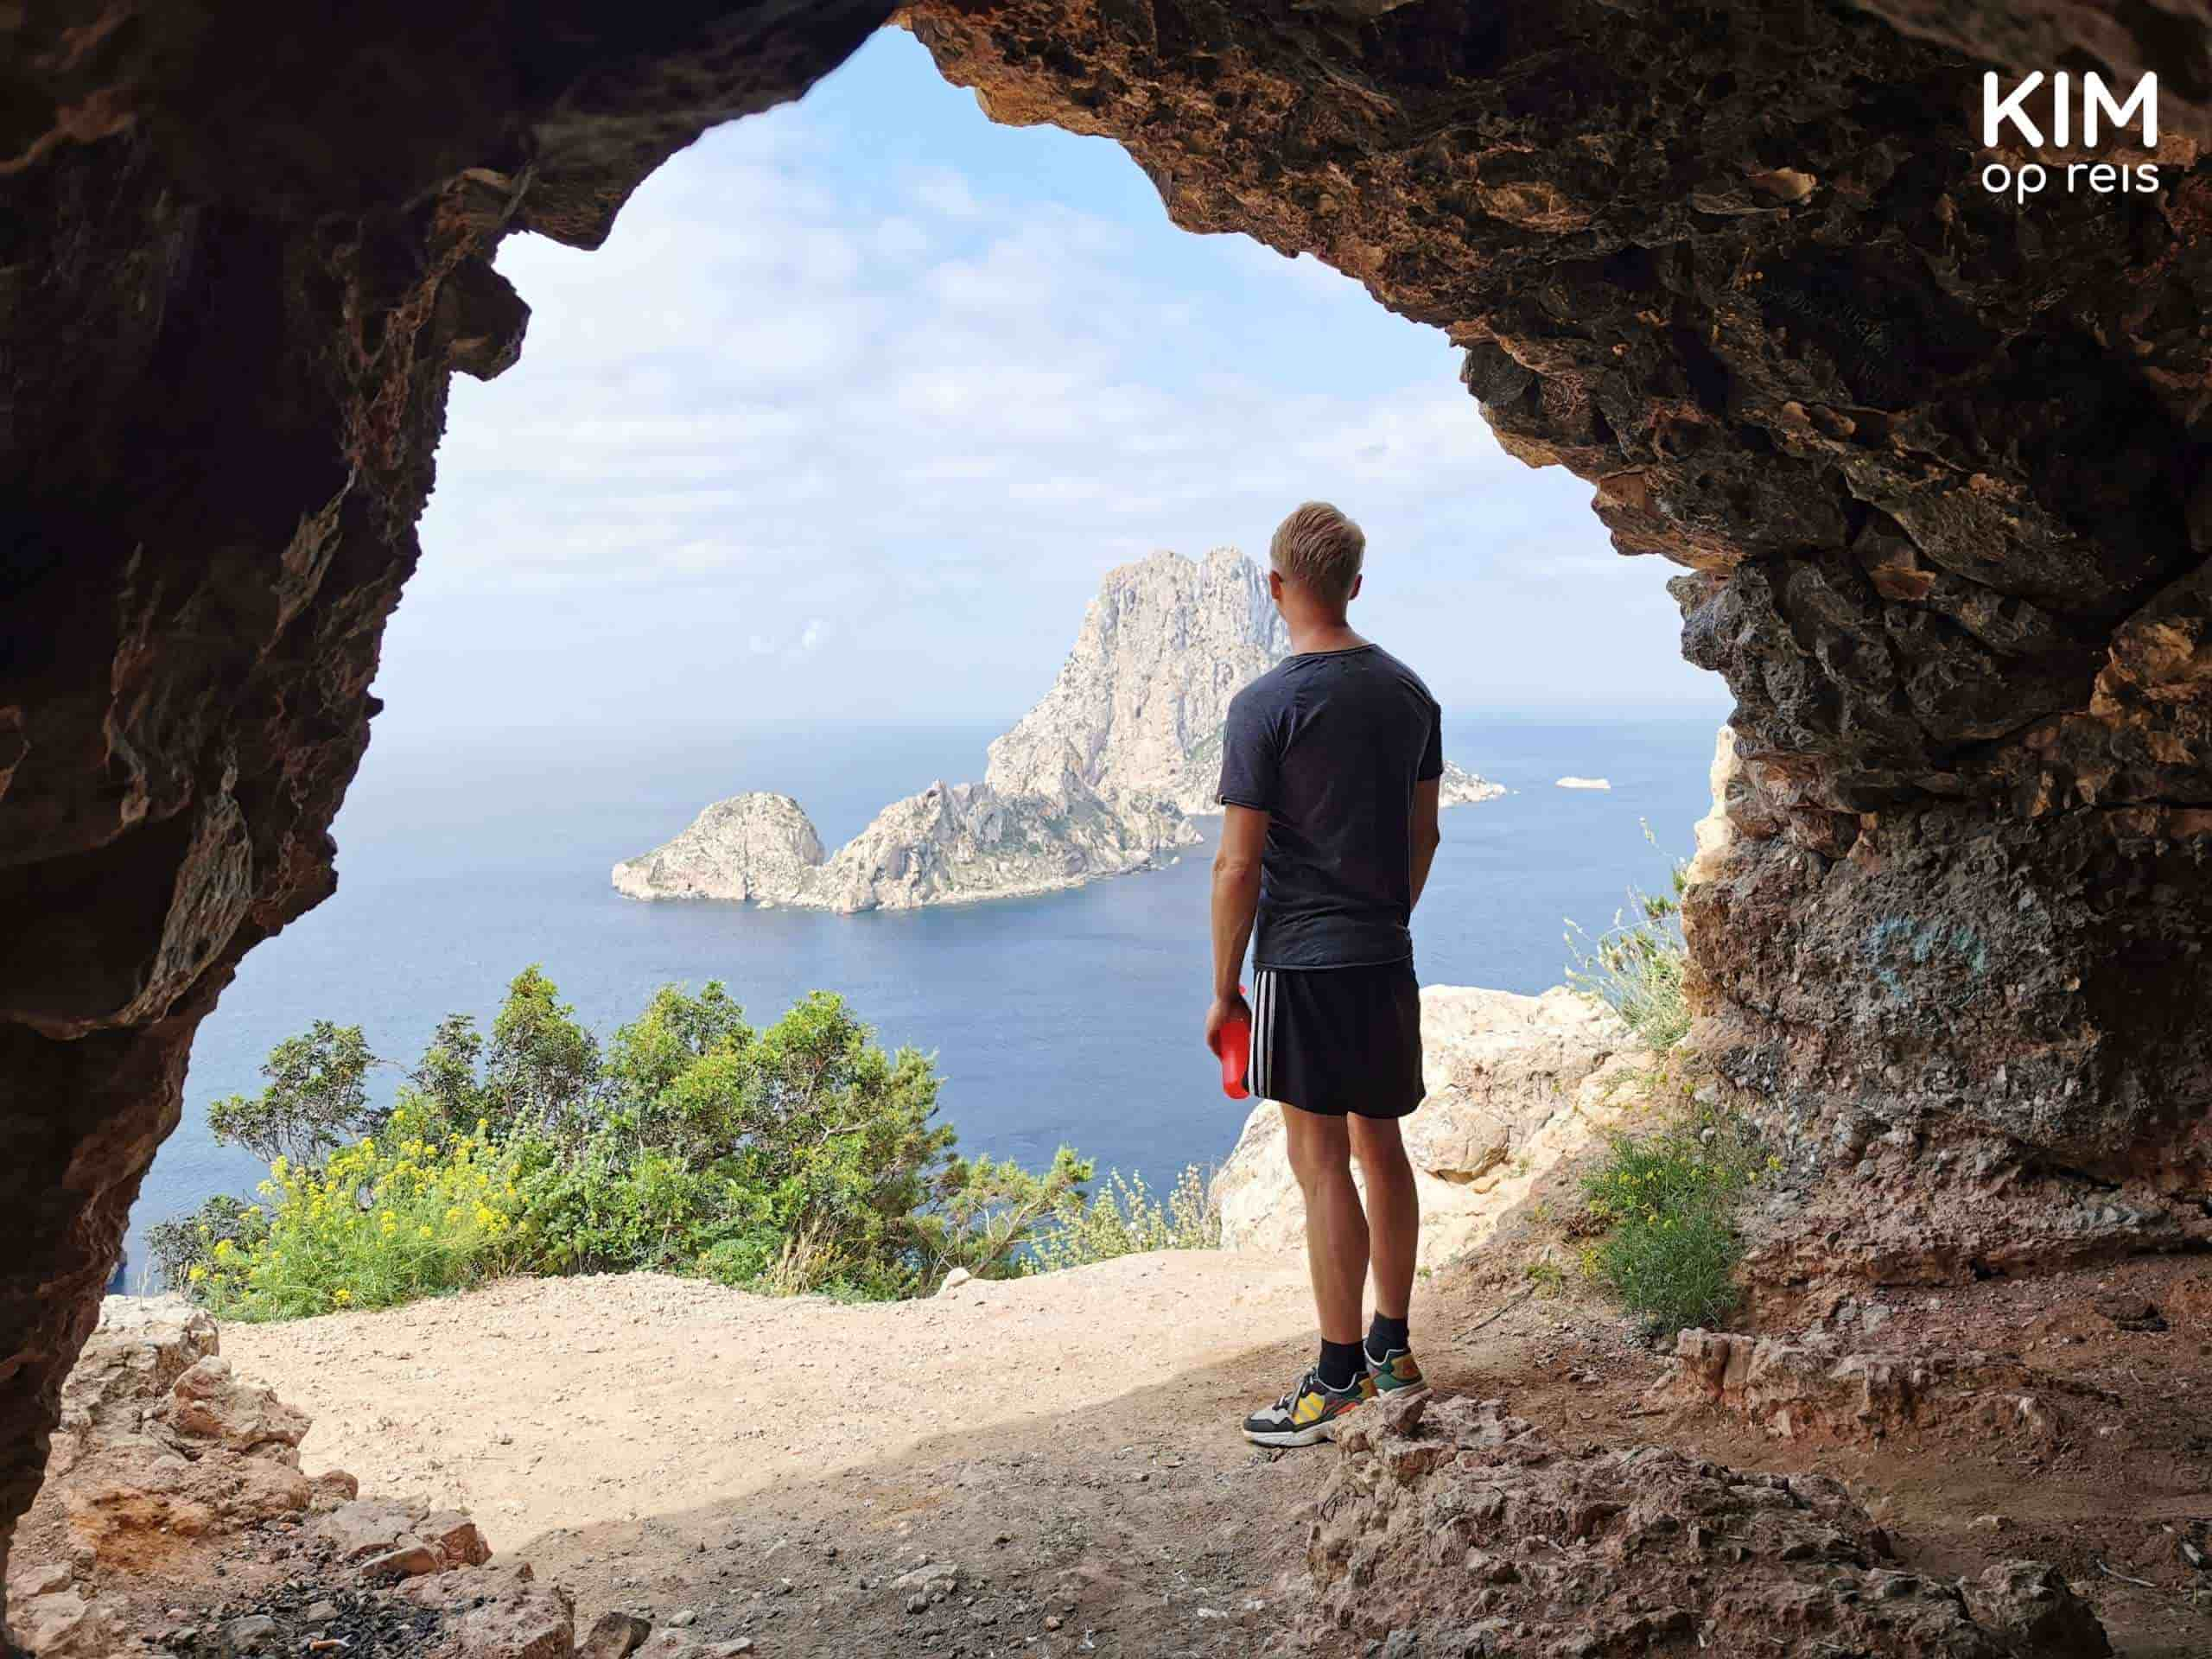 hippie cave Es Vedra: a man stands in the opening of the cave looking at Es Vedra